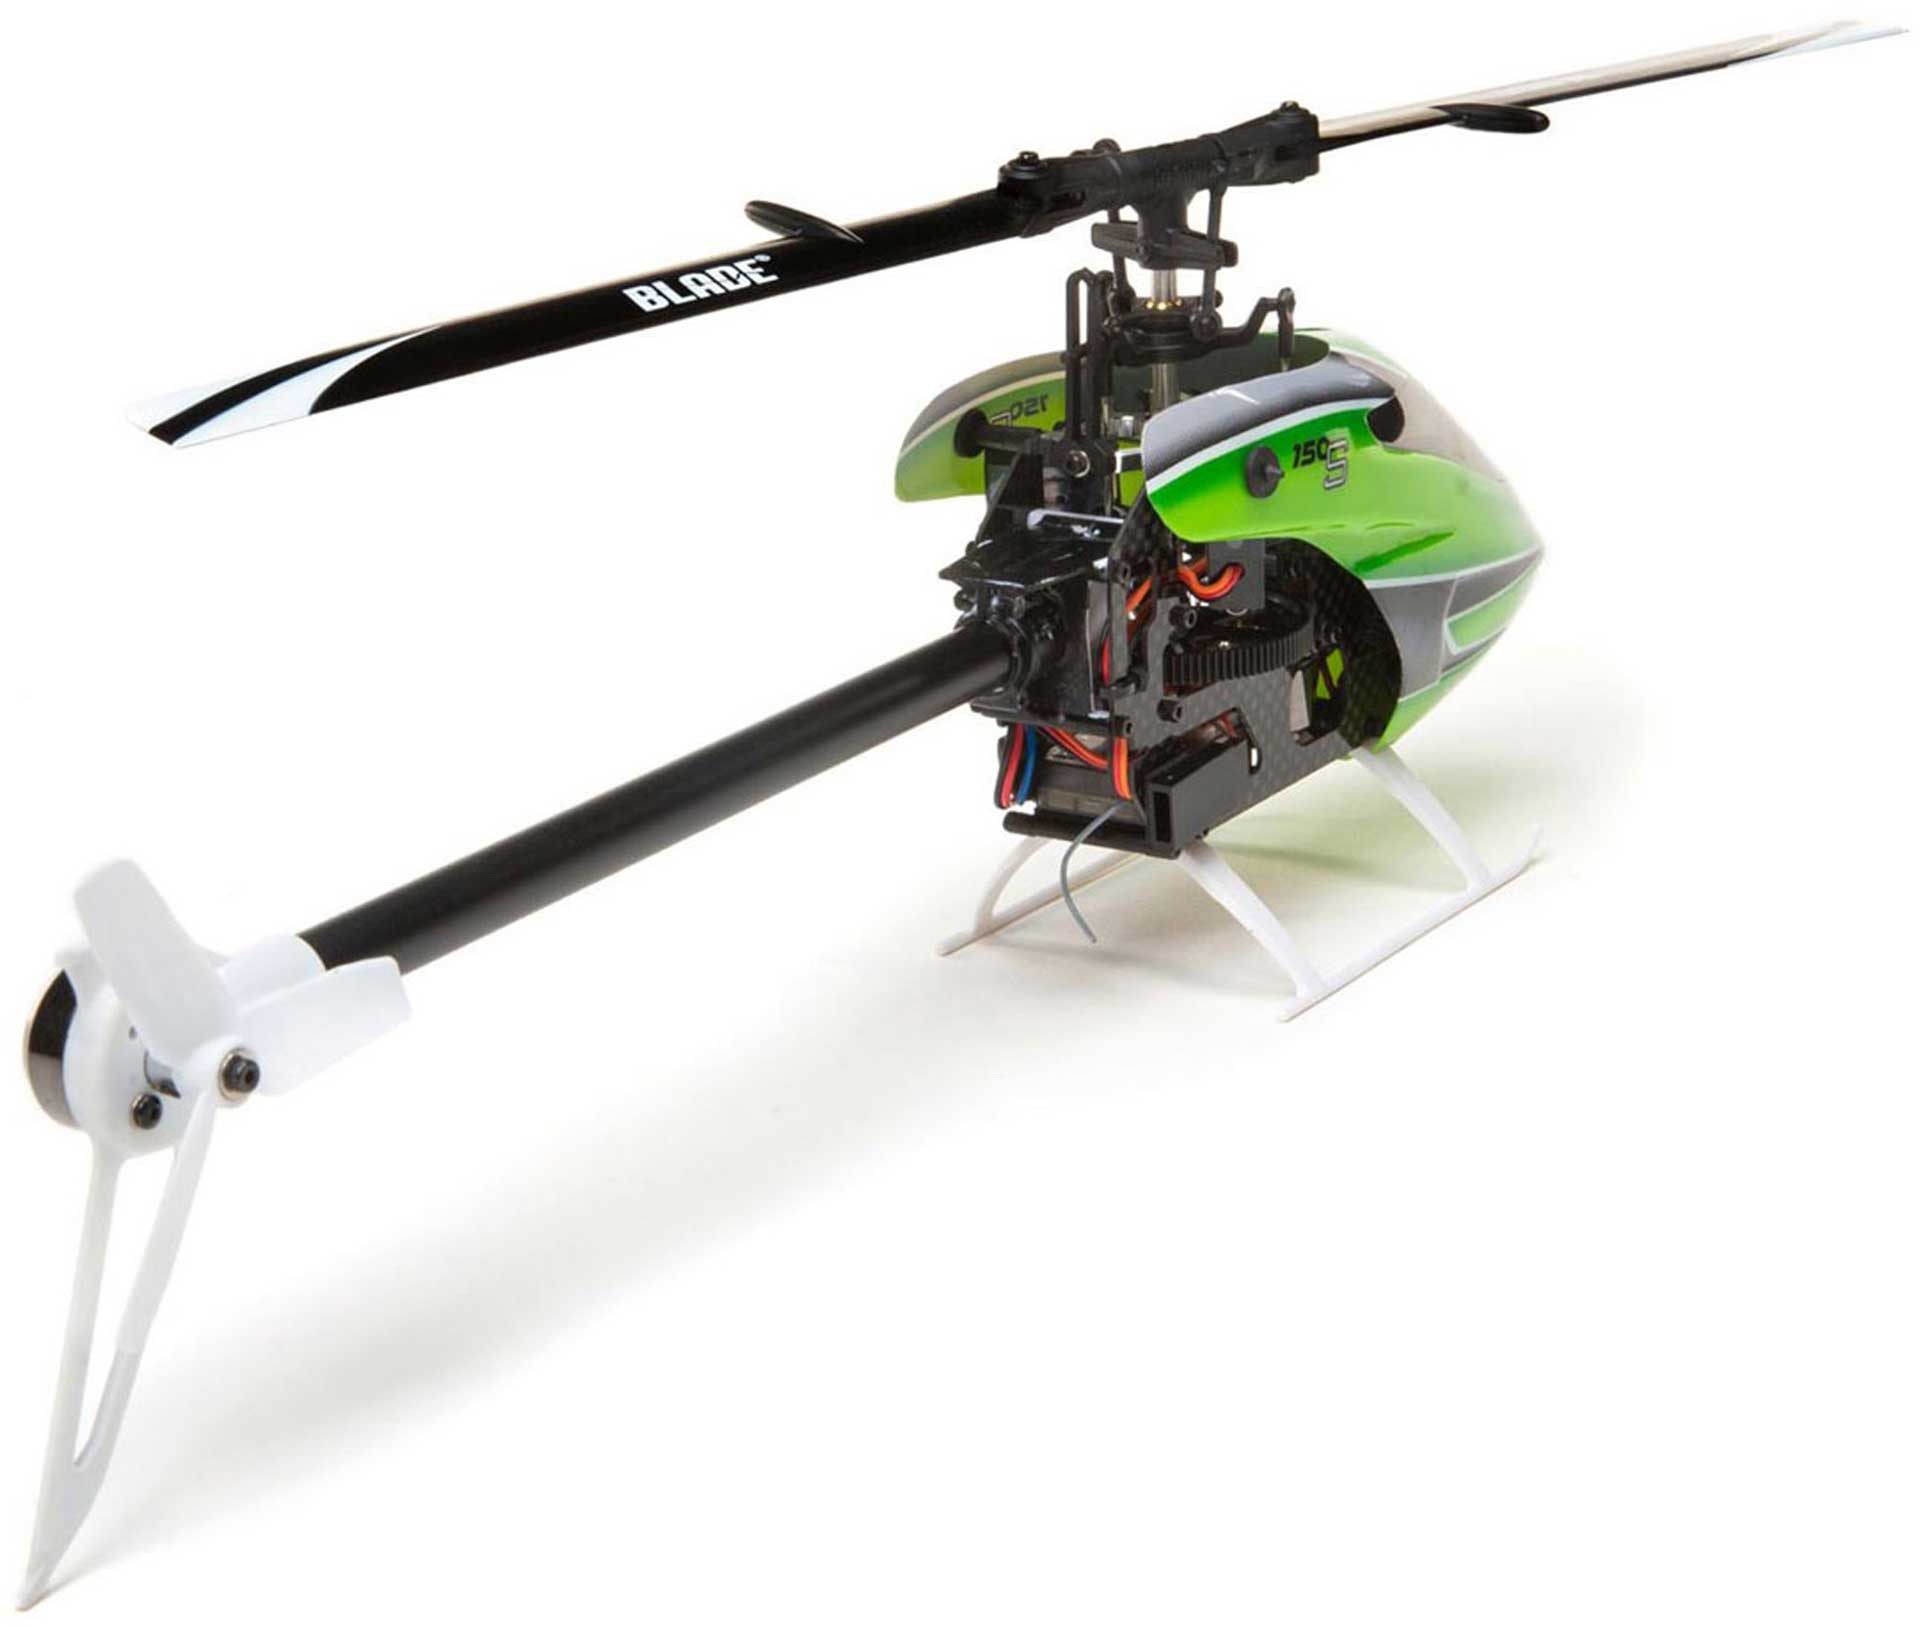 BLADE 150 S BNF BASIC HELICOPTER Hubschrauber / Helikopter